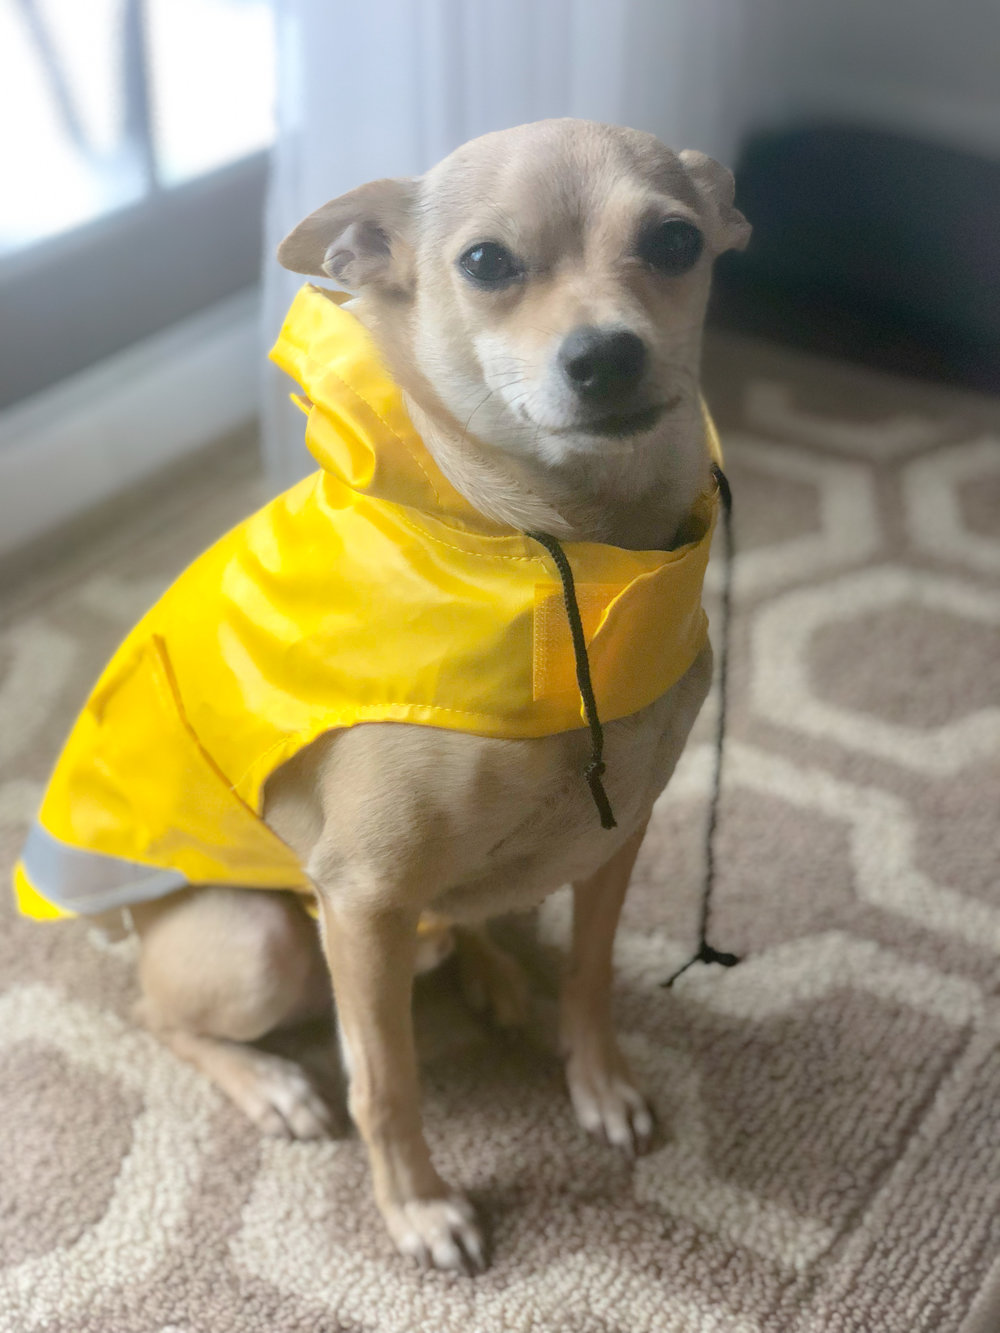 Cooper is ready to go outside in April showers!   This dog coat fits him perfectly.  He usually wears a Medium (believe it or not) in clothes, but we sized down to a Small in this rain coat.  Cooper is less than 15 pounds, has skinny legs, with a large chest, round ribcage, and a long body, leading to the medium for a comfortable fit.  Depending on the outfit, he sometimes can squeeze into a small!